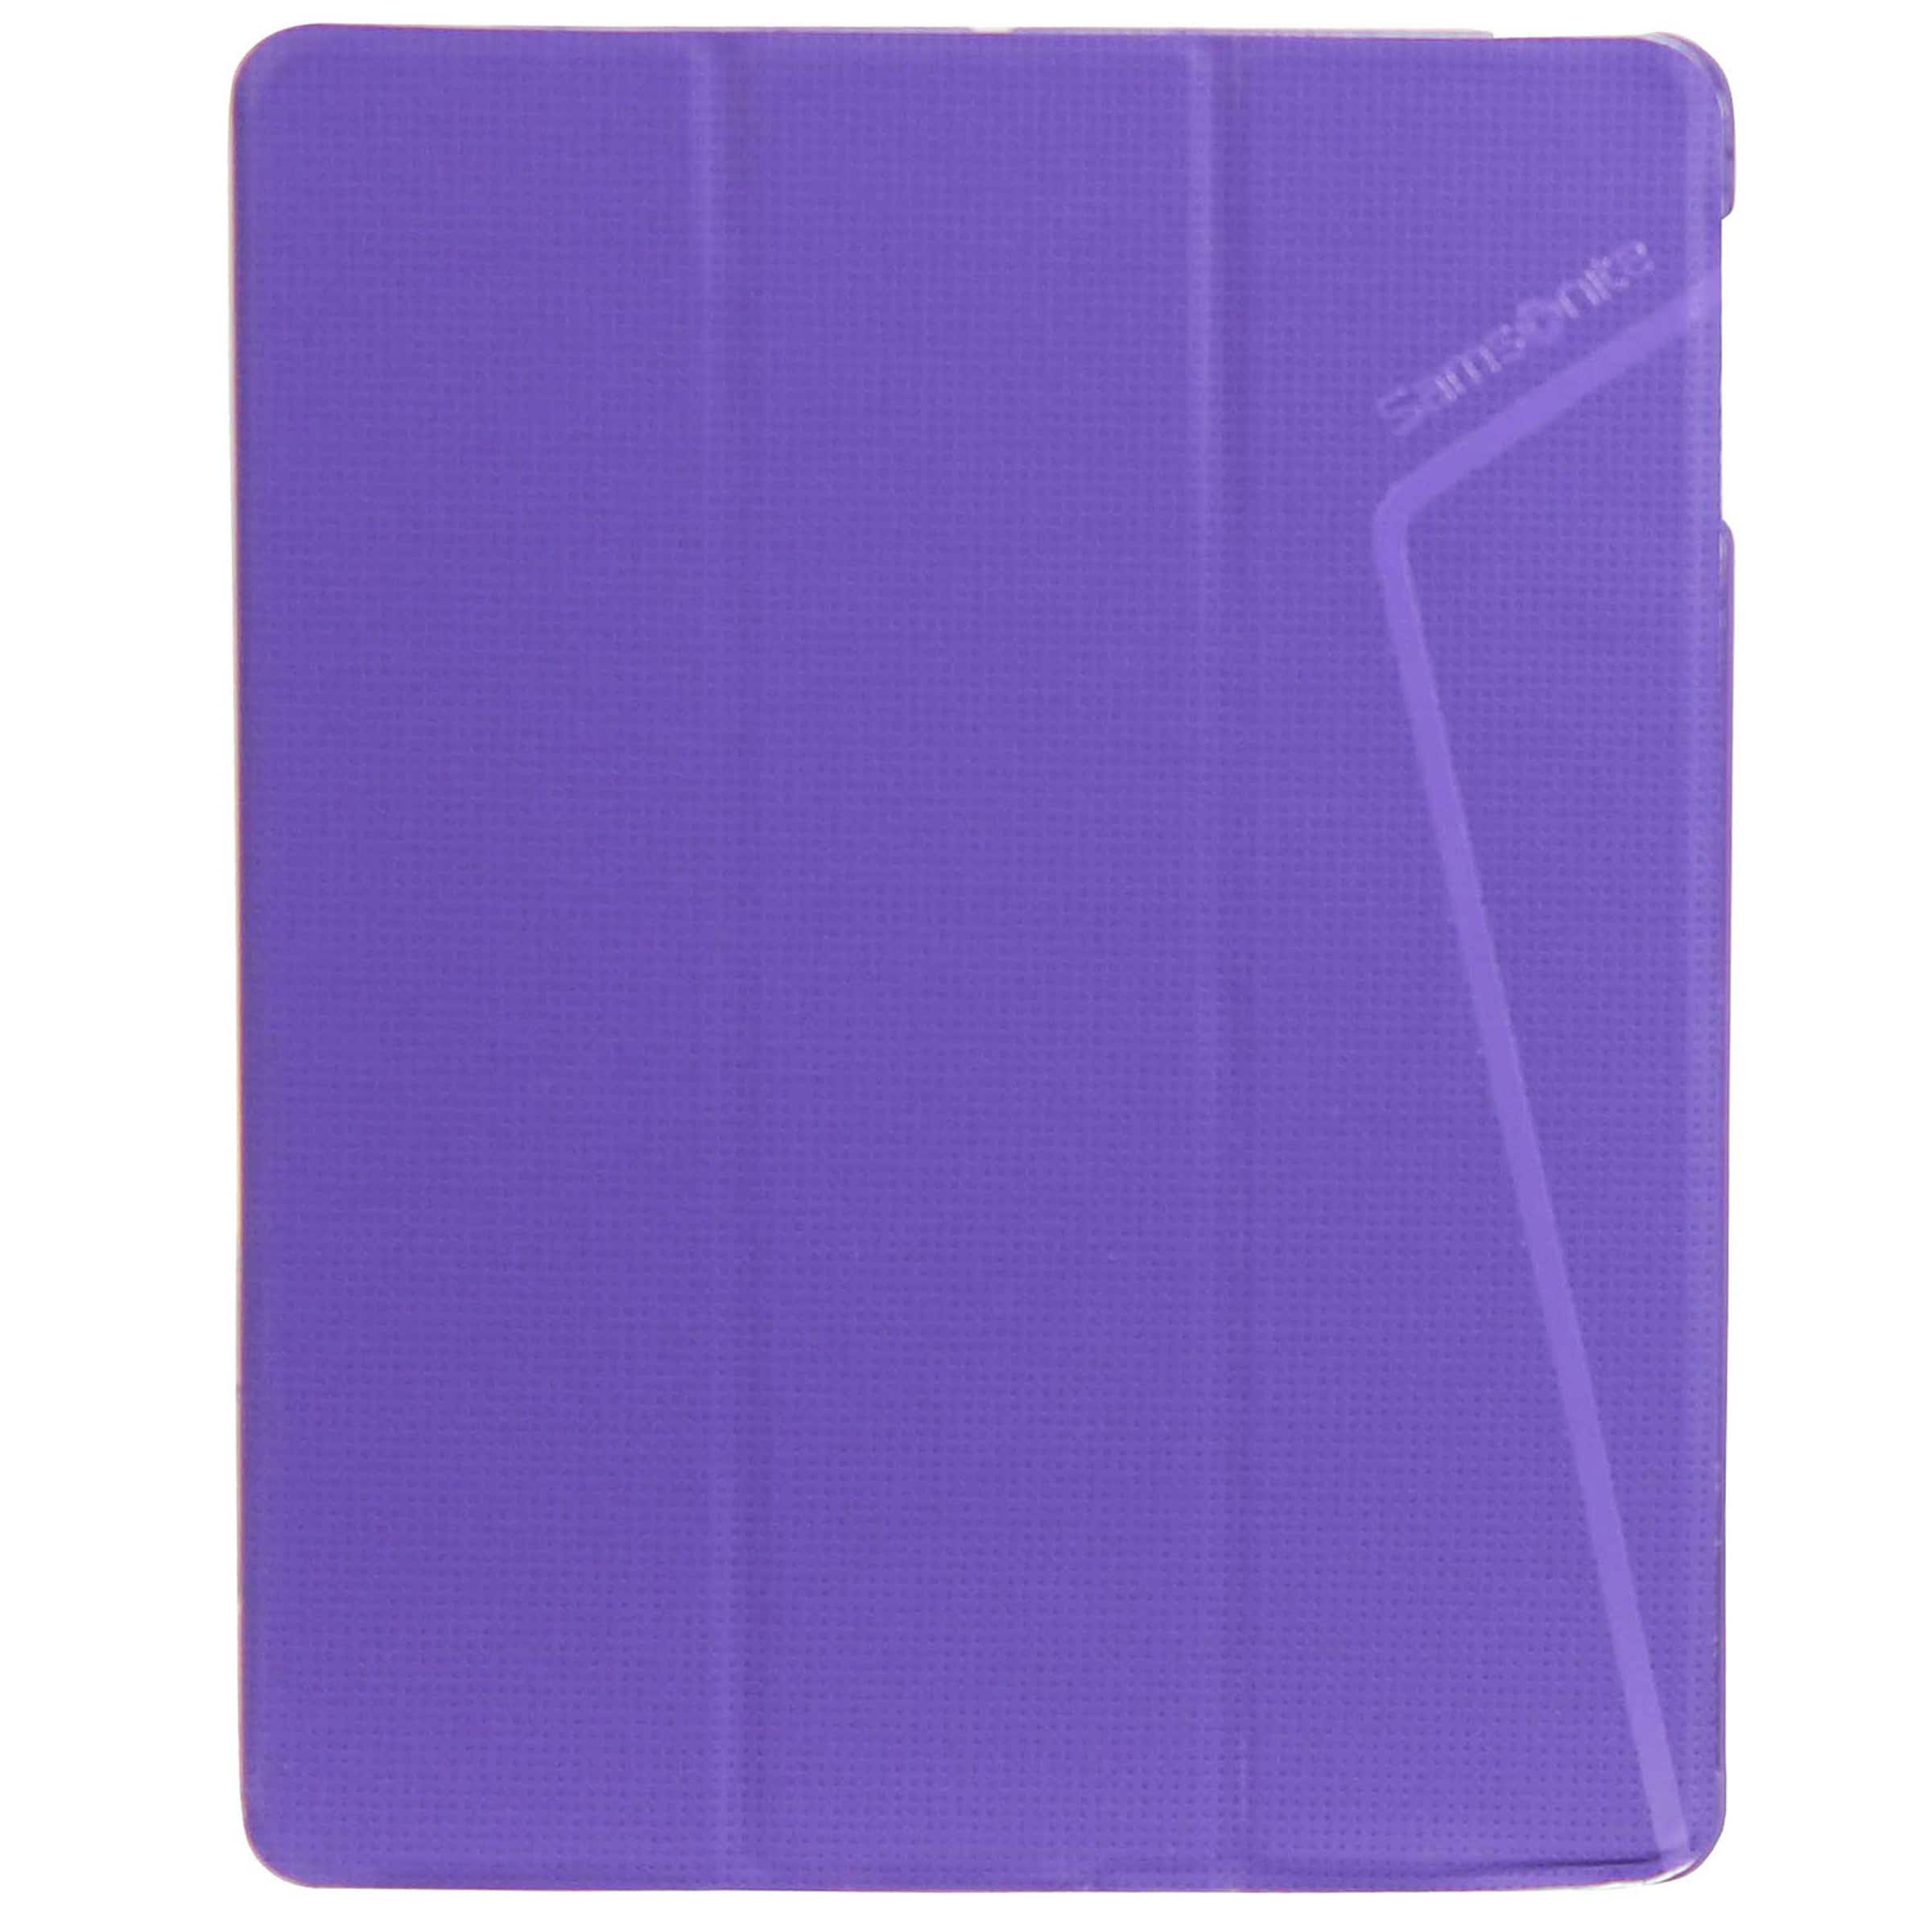 SAMSONITE Thermo Tech IPad Portfolio Hülle 19,5 cm